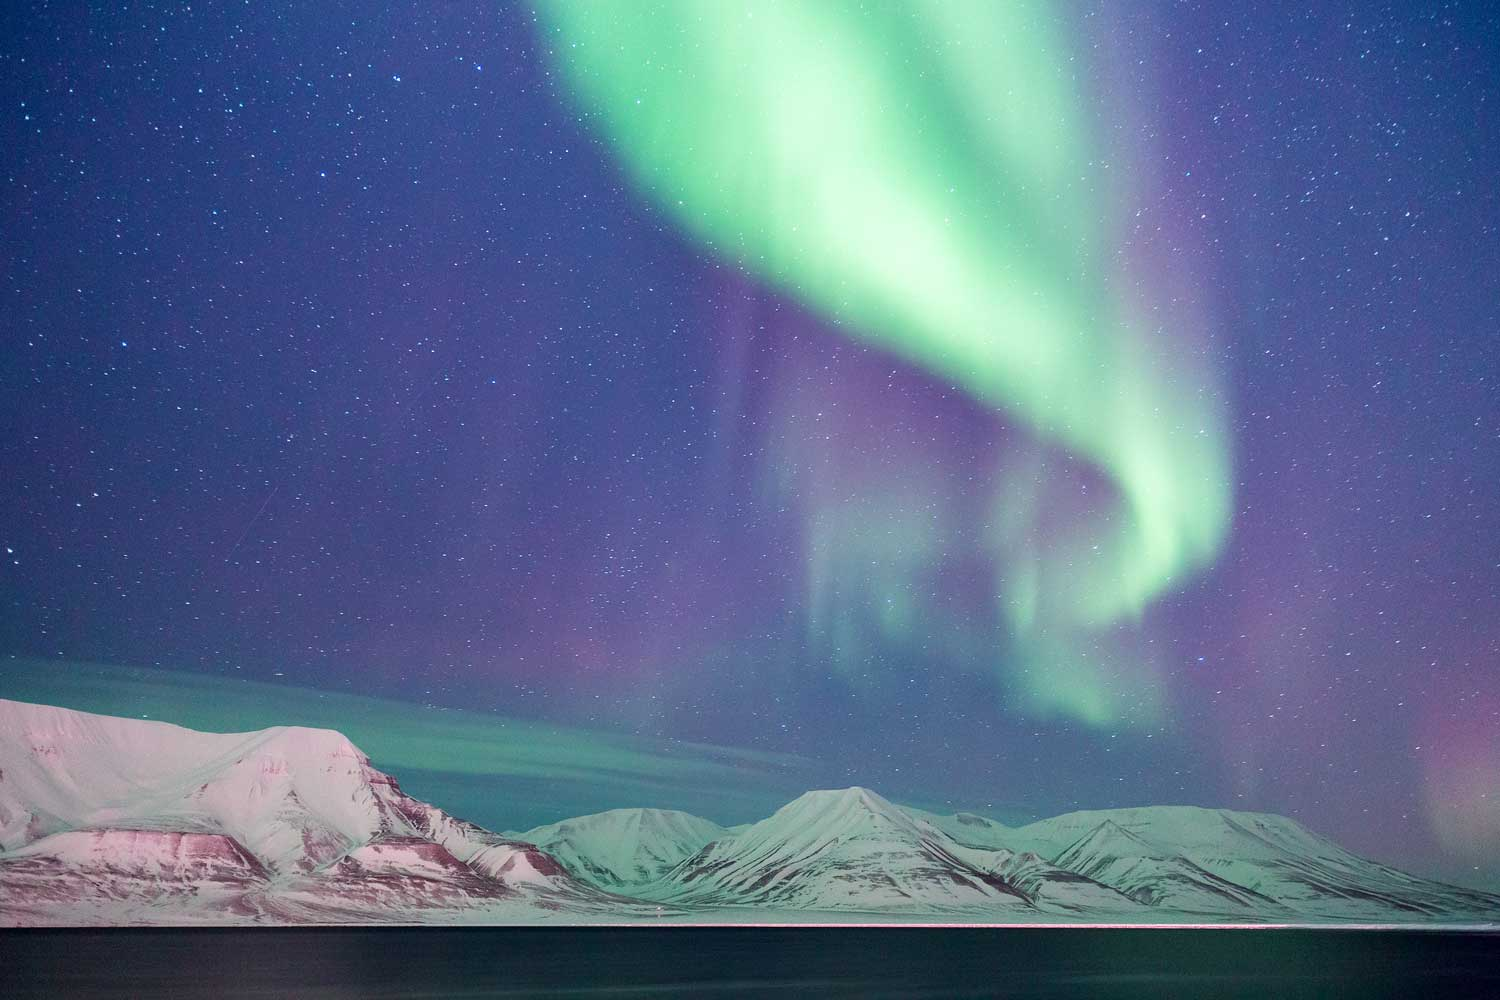 Svalbard Hotel - northern light